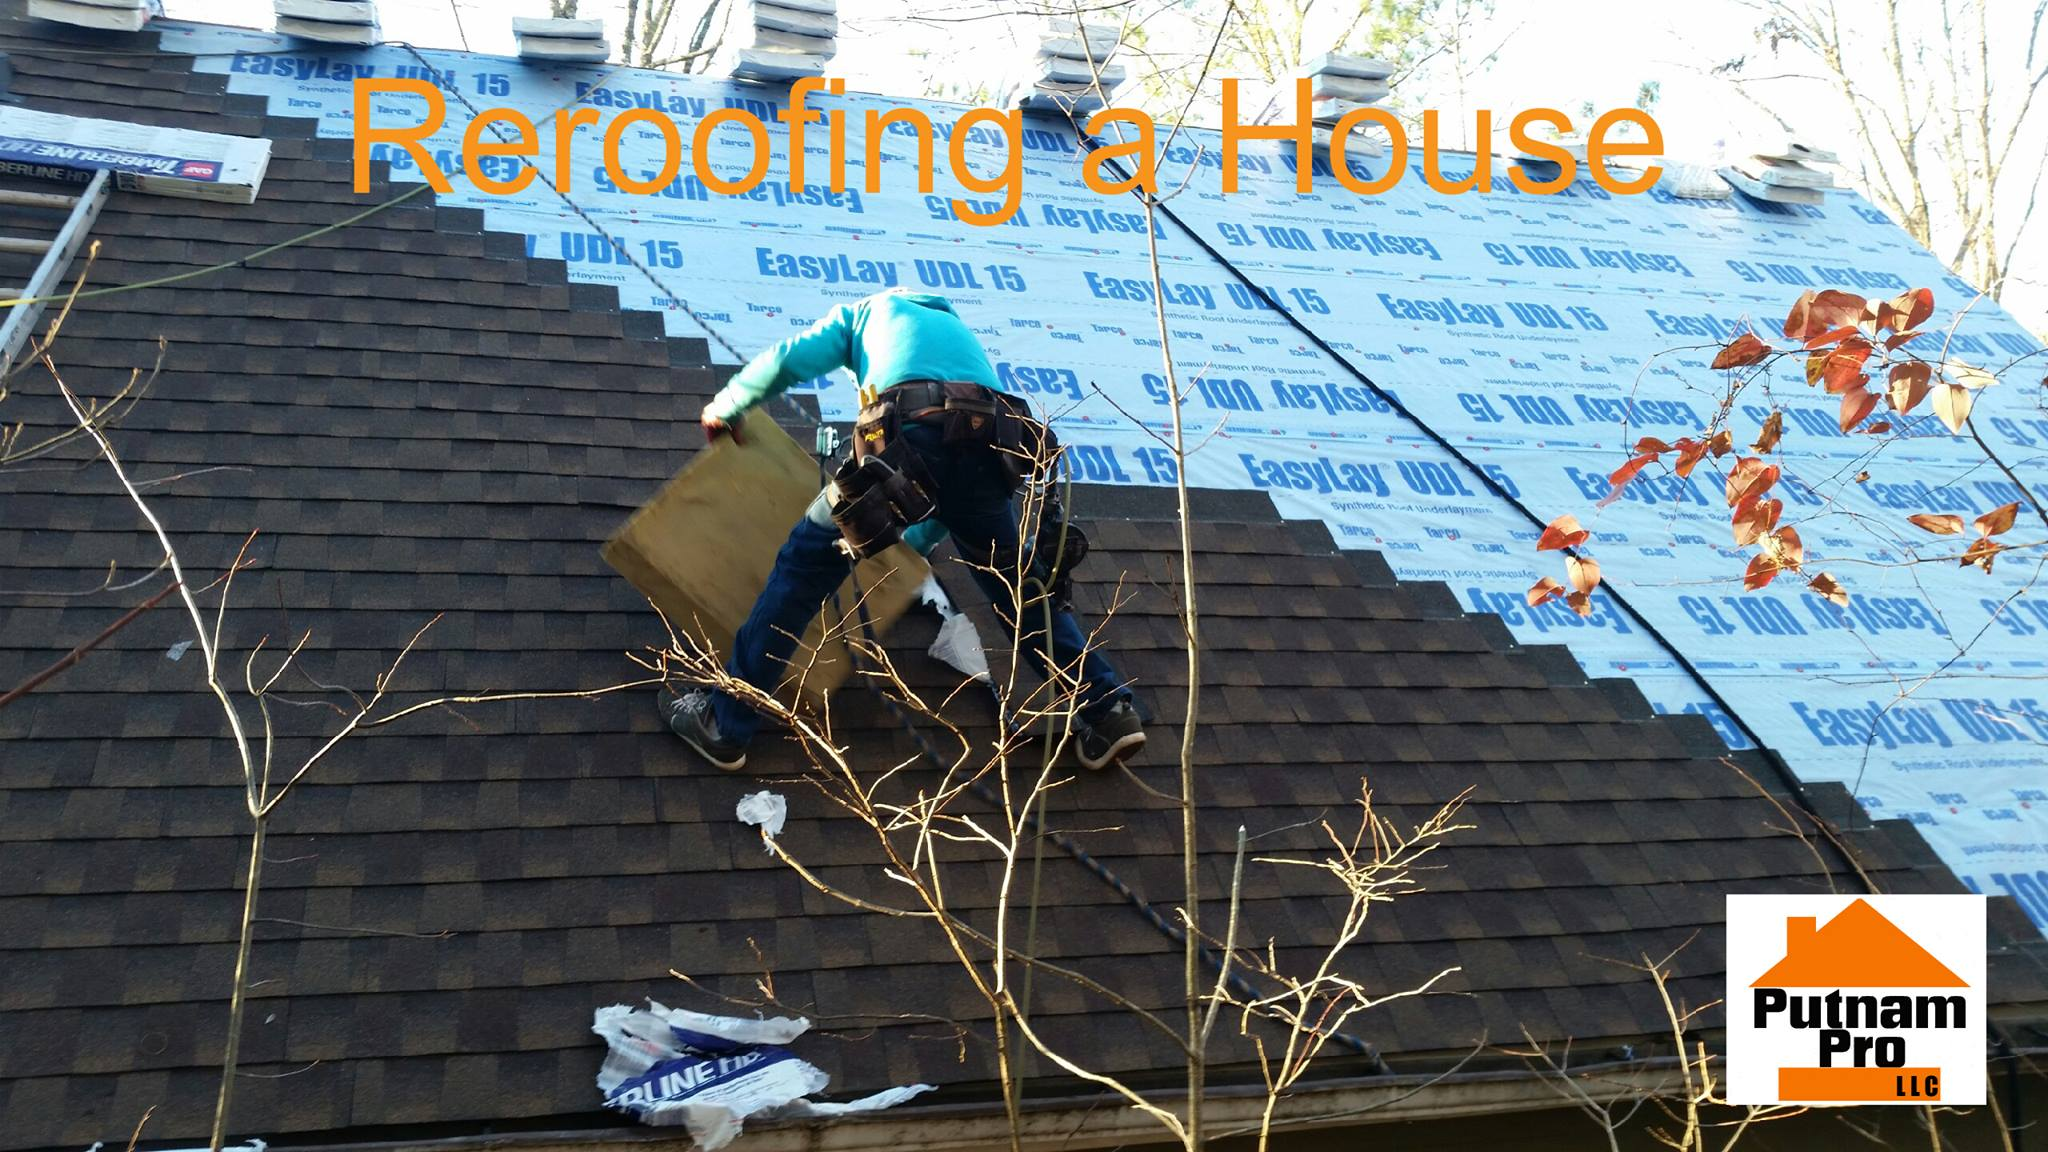 New Roof by Putnam Pro